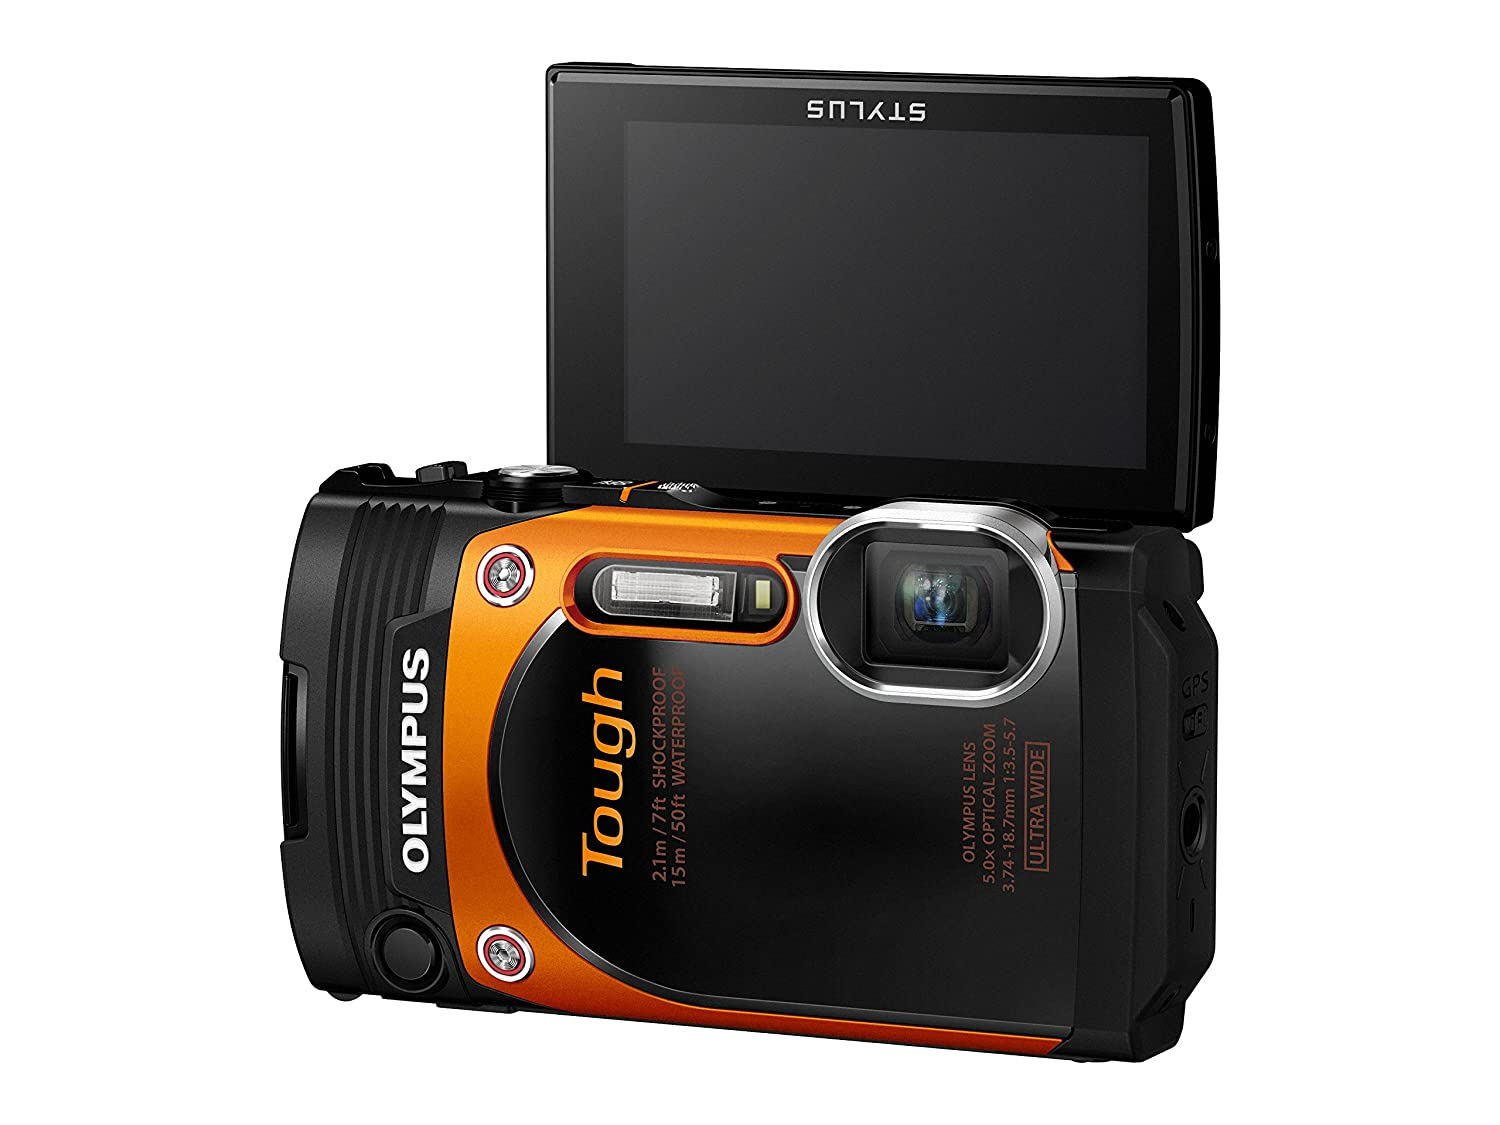 Olympus Digital Camera 5 Amazon.com : Olympus TG-860 Tough Waterproof Digital Camera with 3-Inch LCD  (Orange) : Camera u0026 Photo